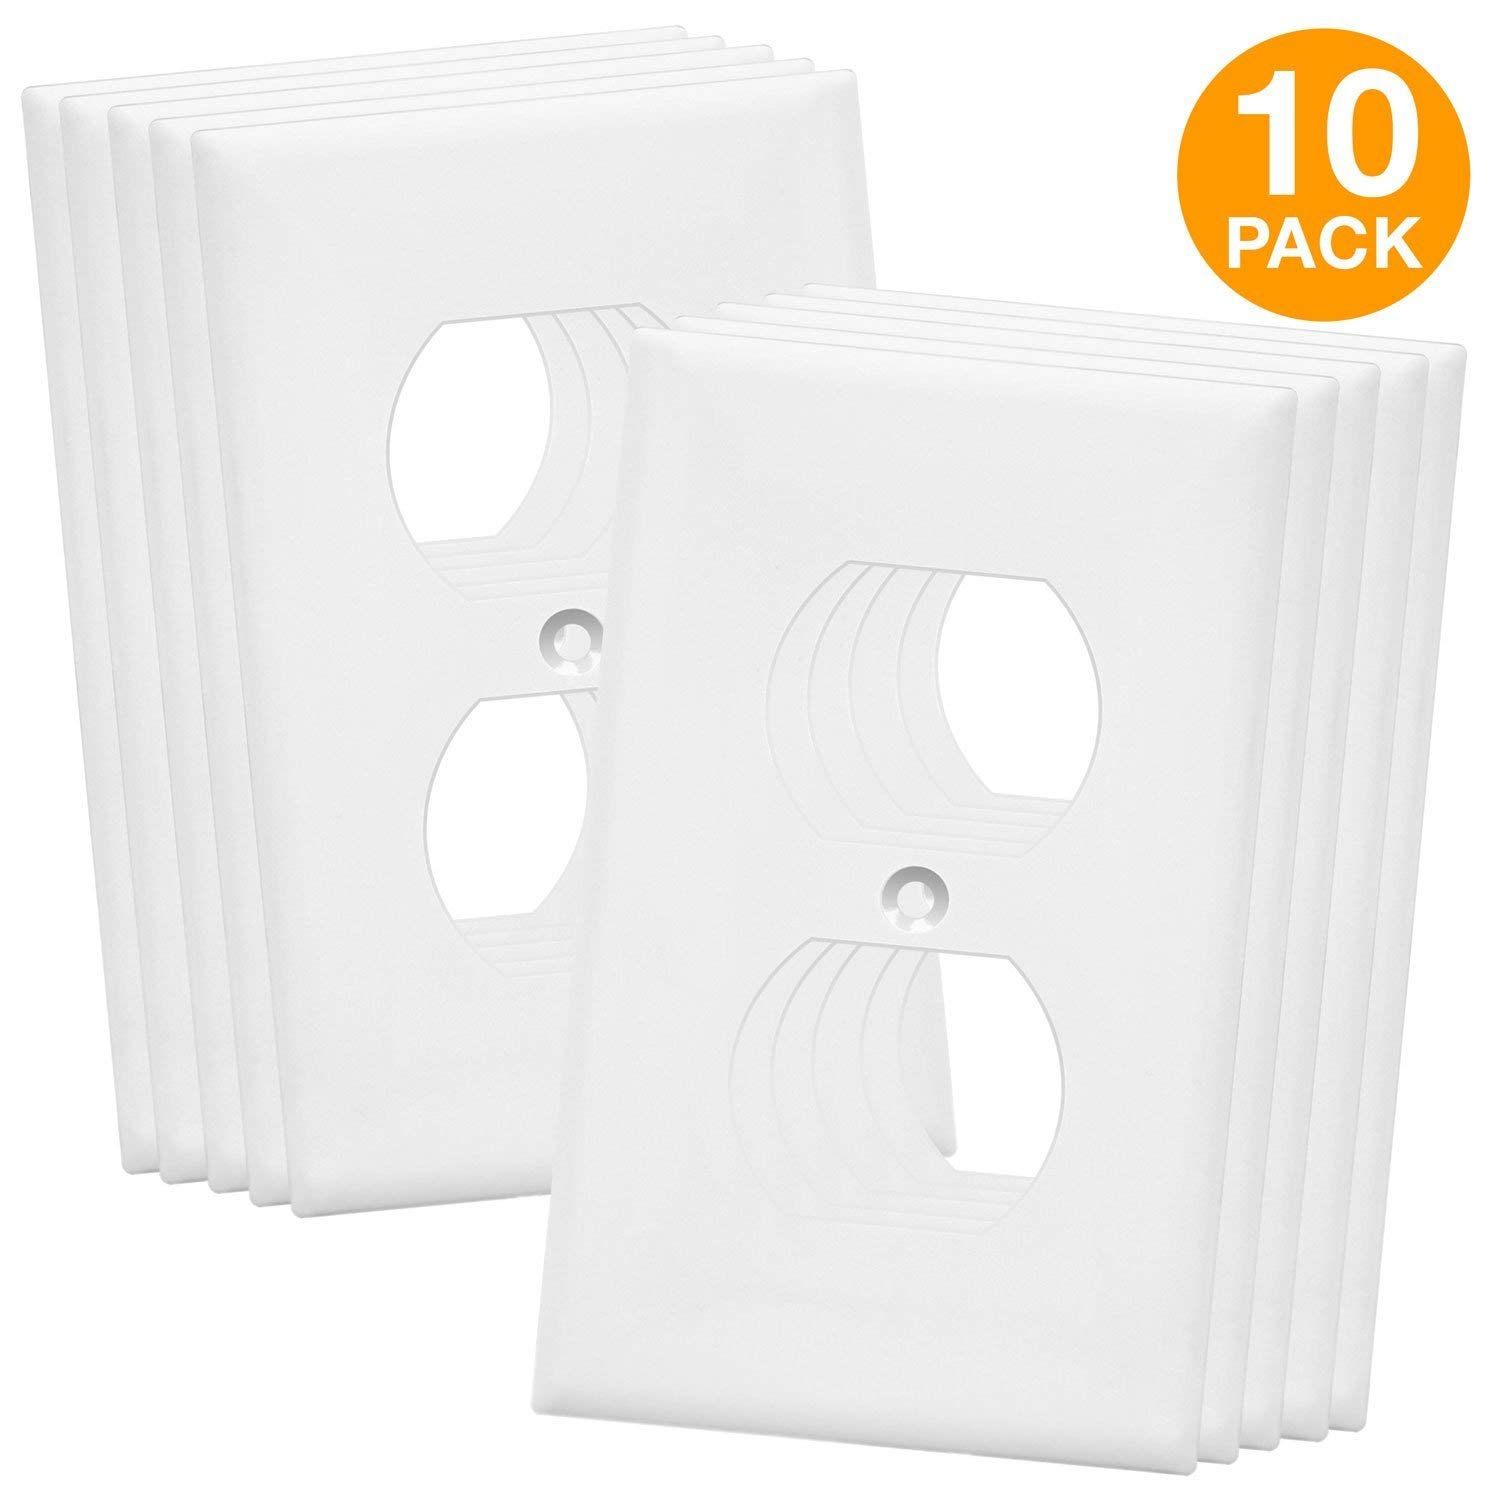 ENERLITES Duplex Receptacle Outlet Wall Plate, Size 1-Gang 4.50'' x 2.76'', Polycarbonate Thermoplastic, 8821-W-10PCS, White (10 Pack) by ENERLITES (Image #2)